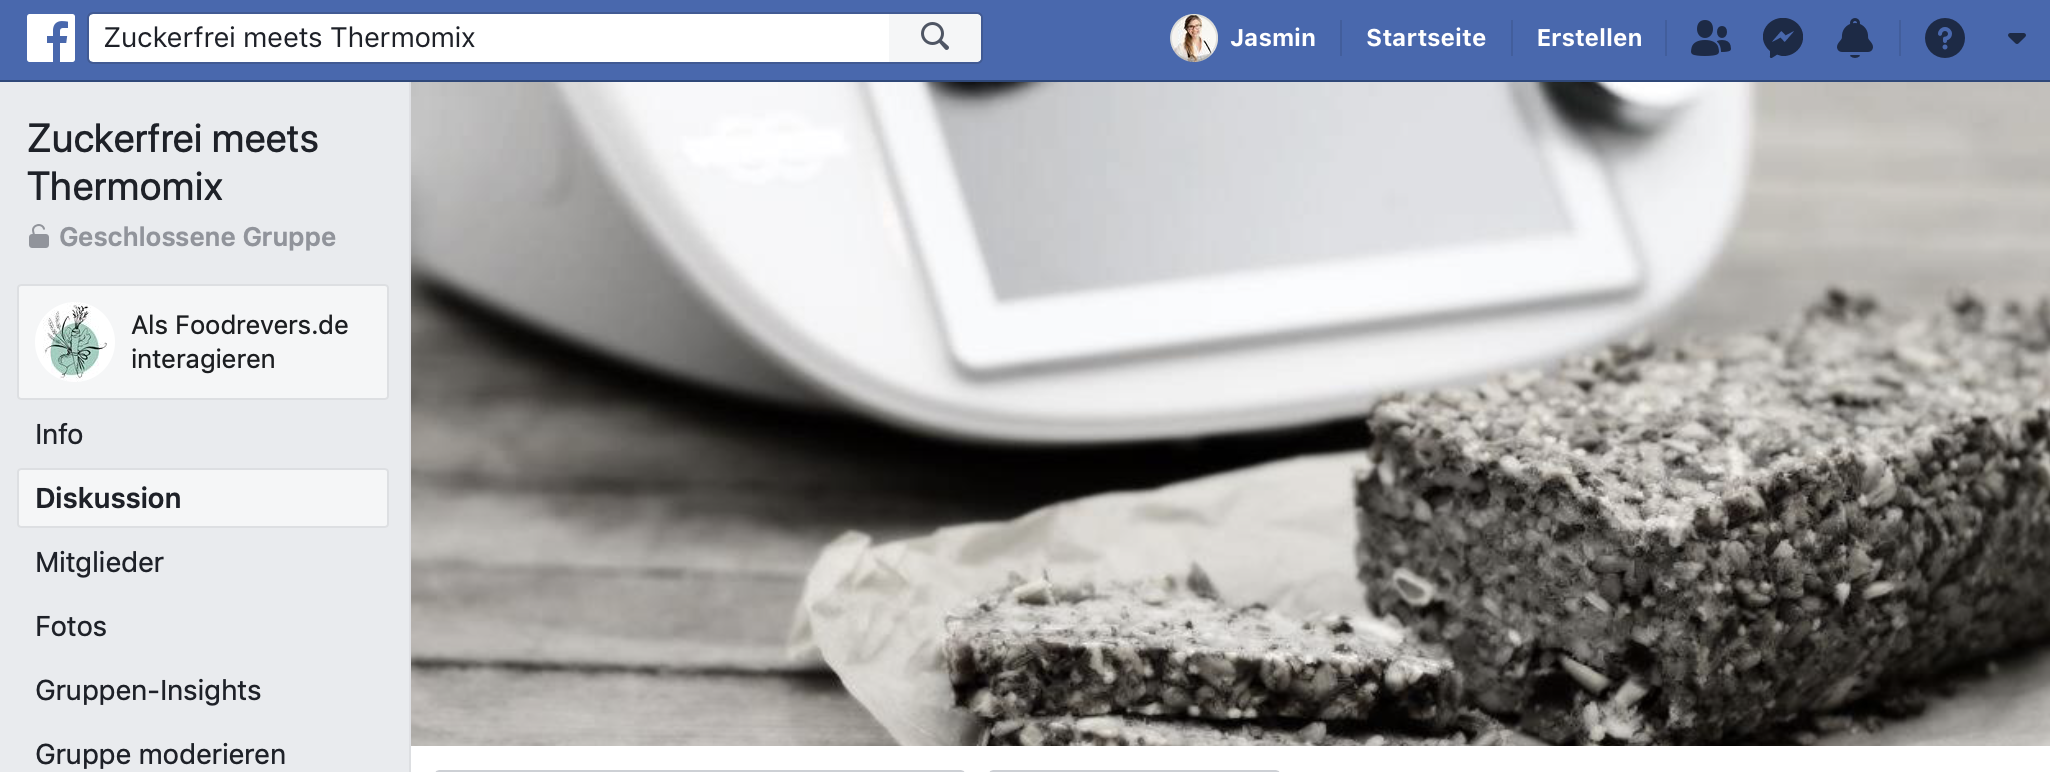 Facebook Gruppe zuckerfrei meets Thermomix Foodrevers Clean Eating